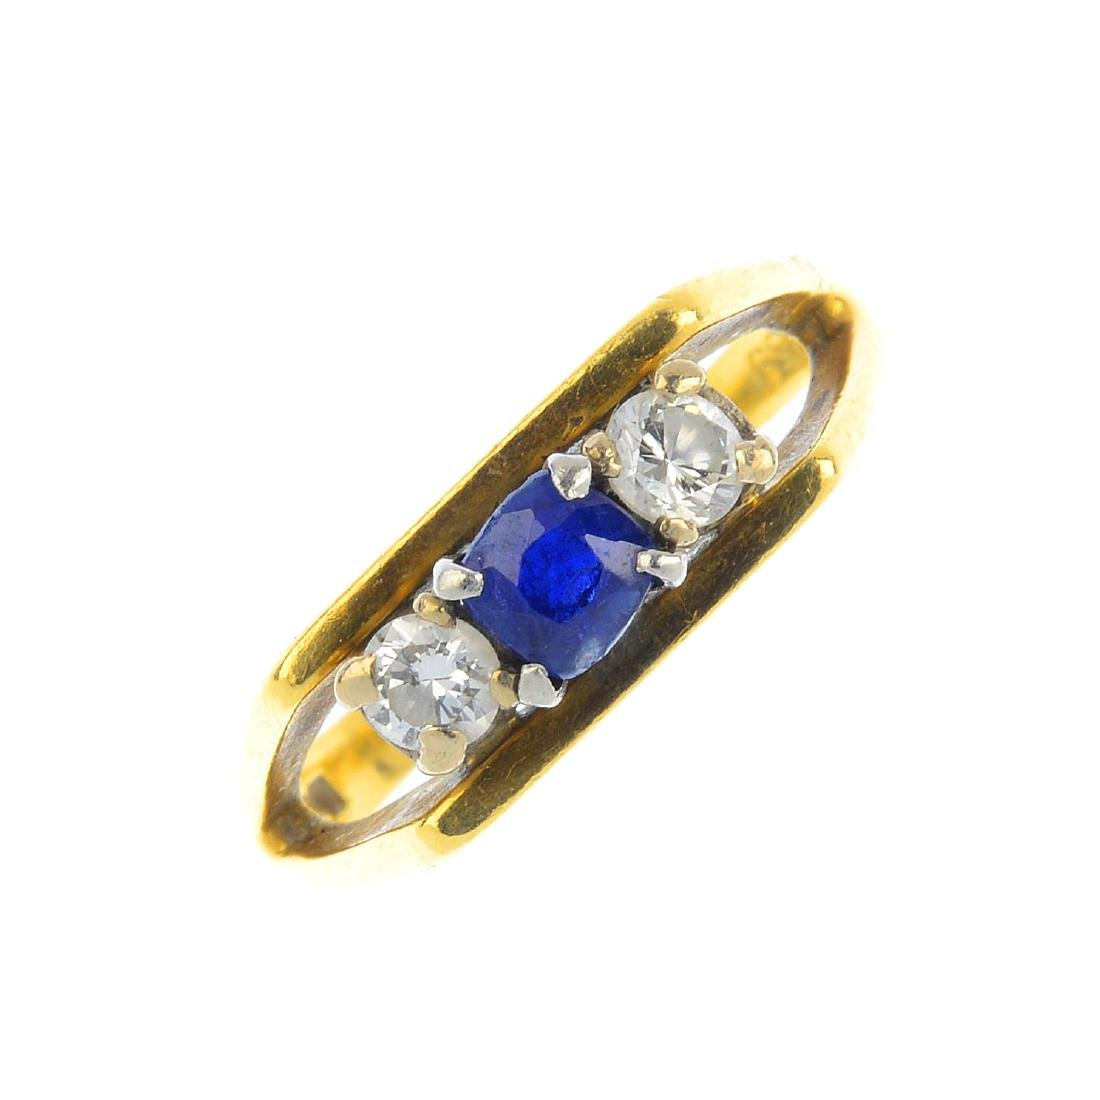 An 18ct gold sapphire and diamond three-stone ring. The